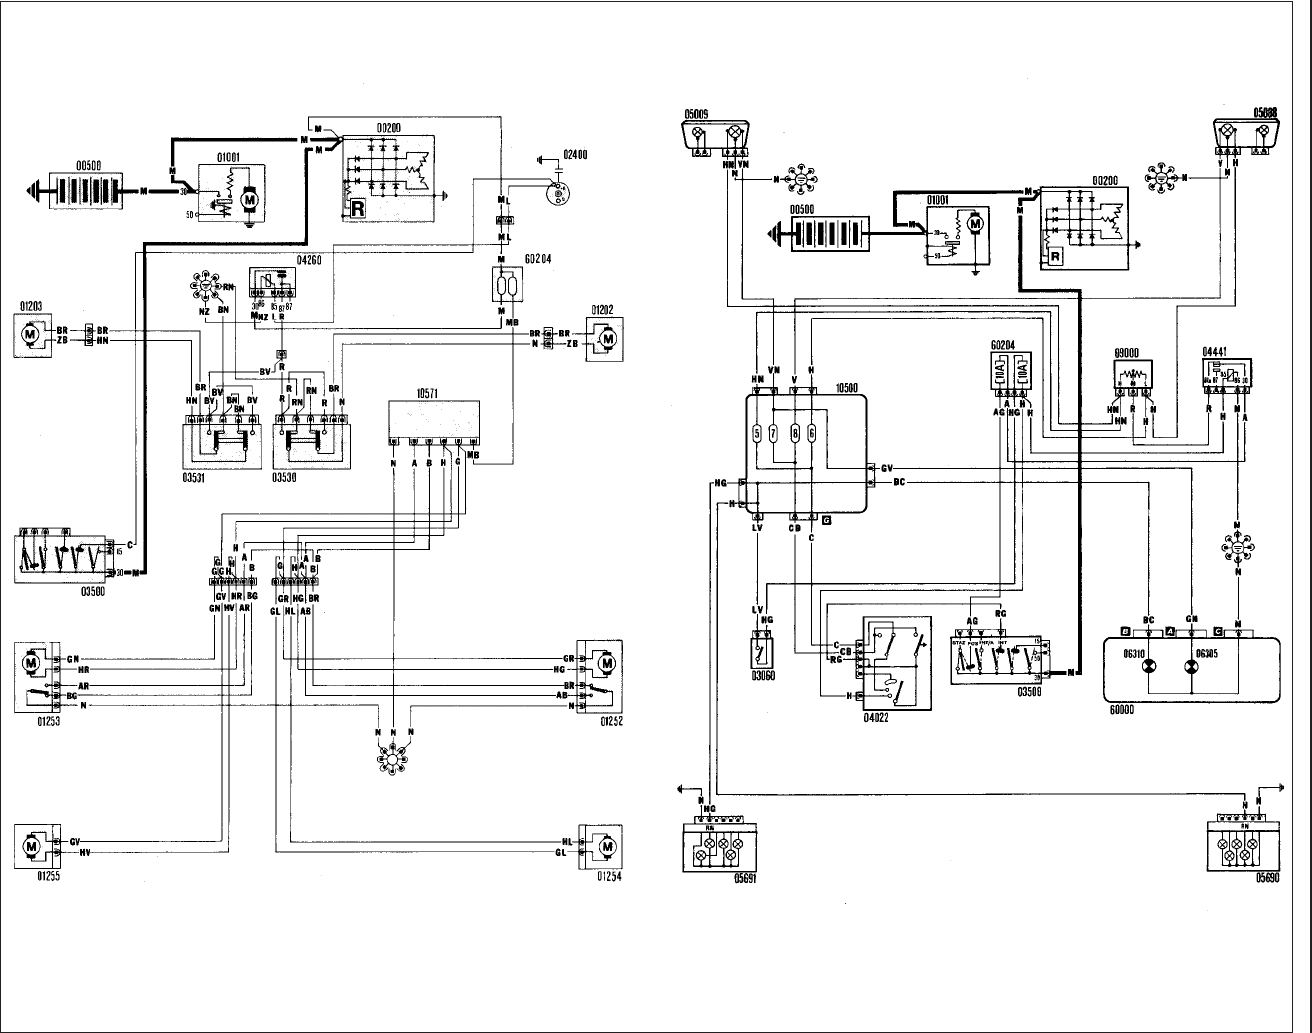 65bea298 2412 47ba b5ee fed054a0fb71 bgf9?resize=665%2C524 fiat ducato radio wiring diagrams fiat 124 wiring diagram, fiat fiat ducato radio wiring diagram at bakdesigns.co